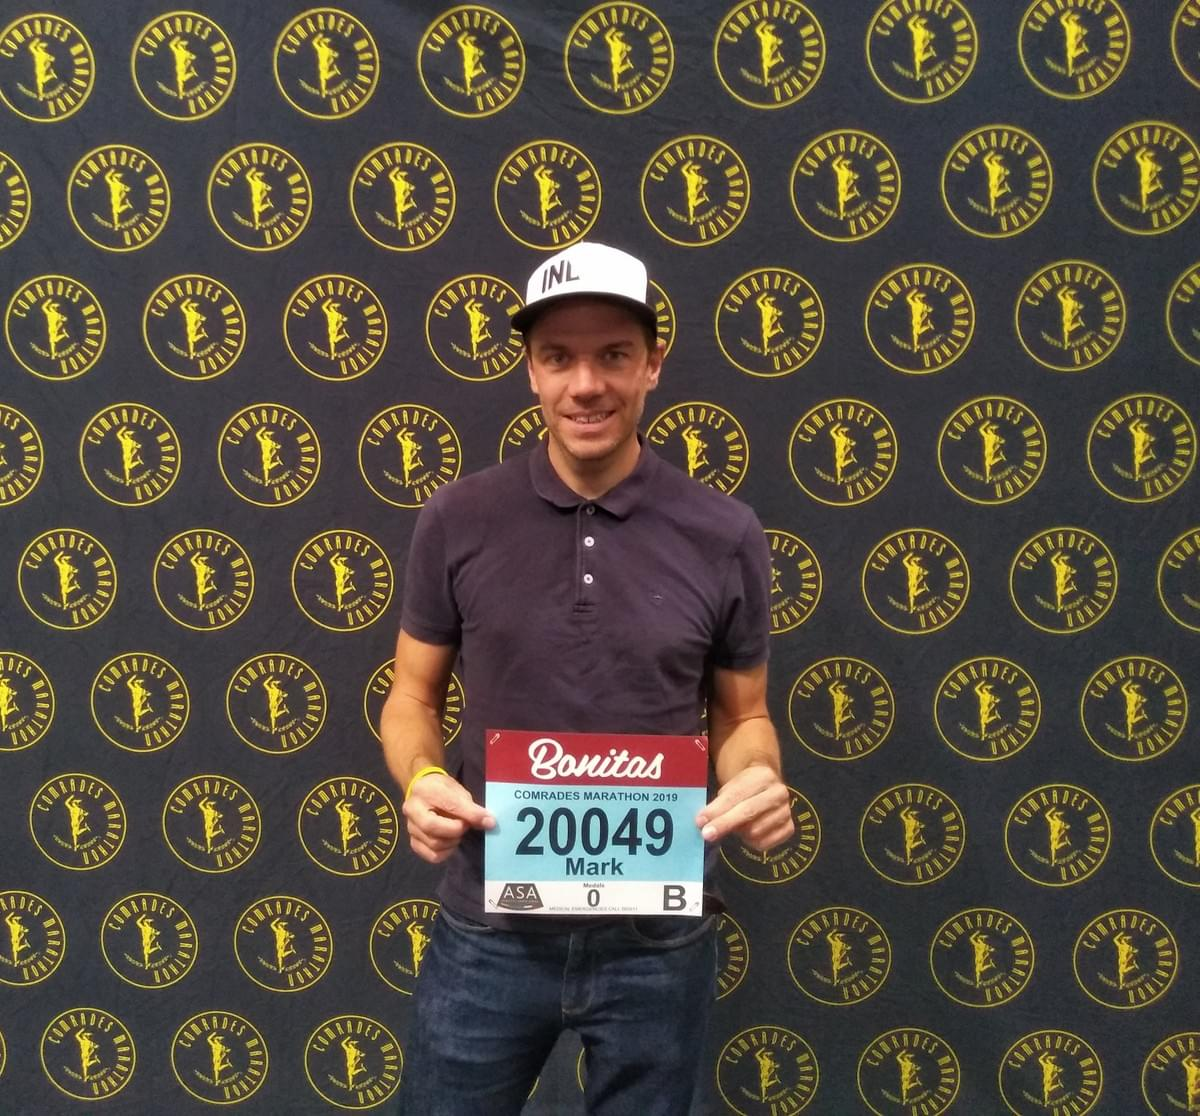 Ultra runner holding his race number at the 2019 Comrades Marathon expo in Durban